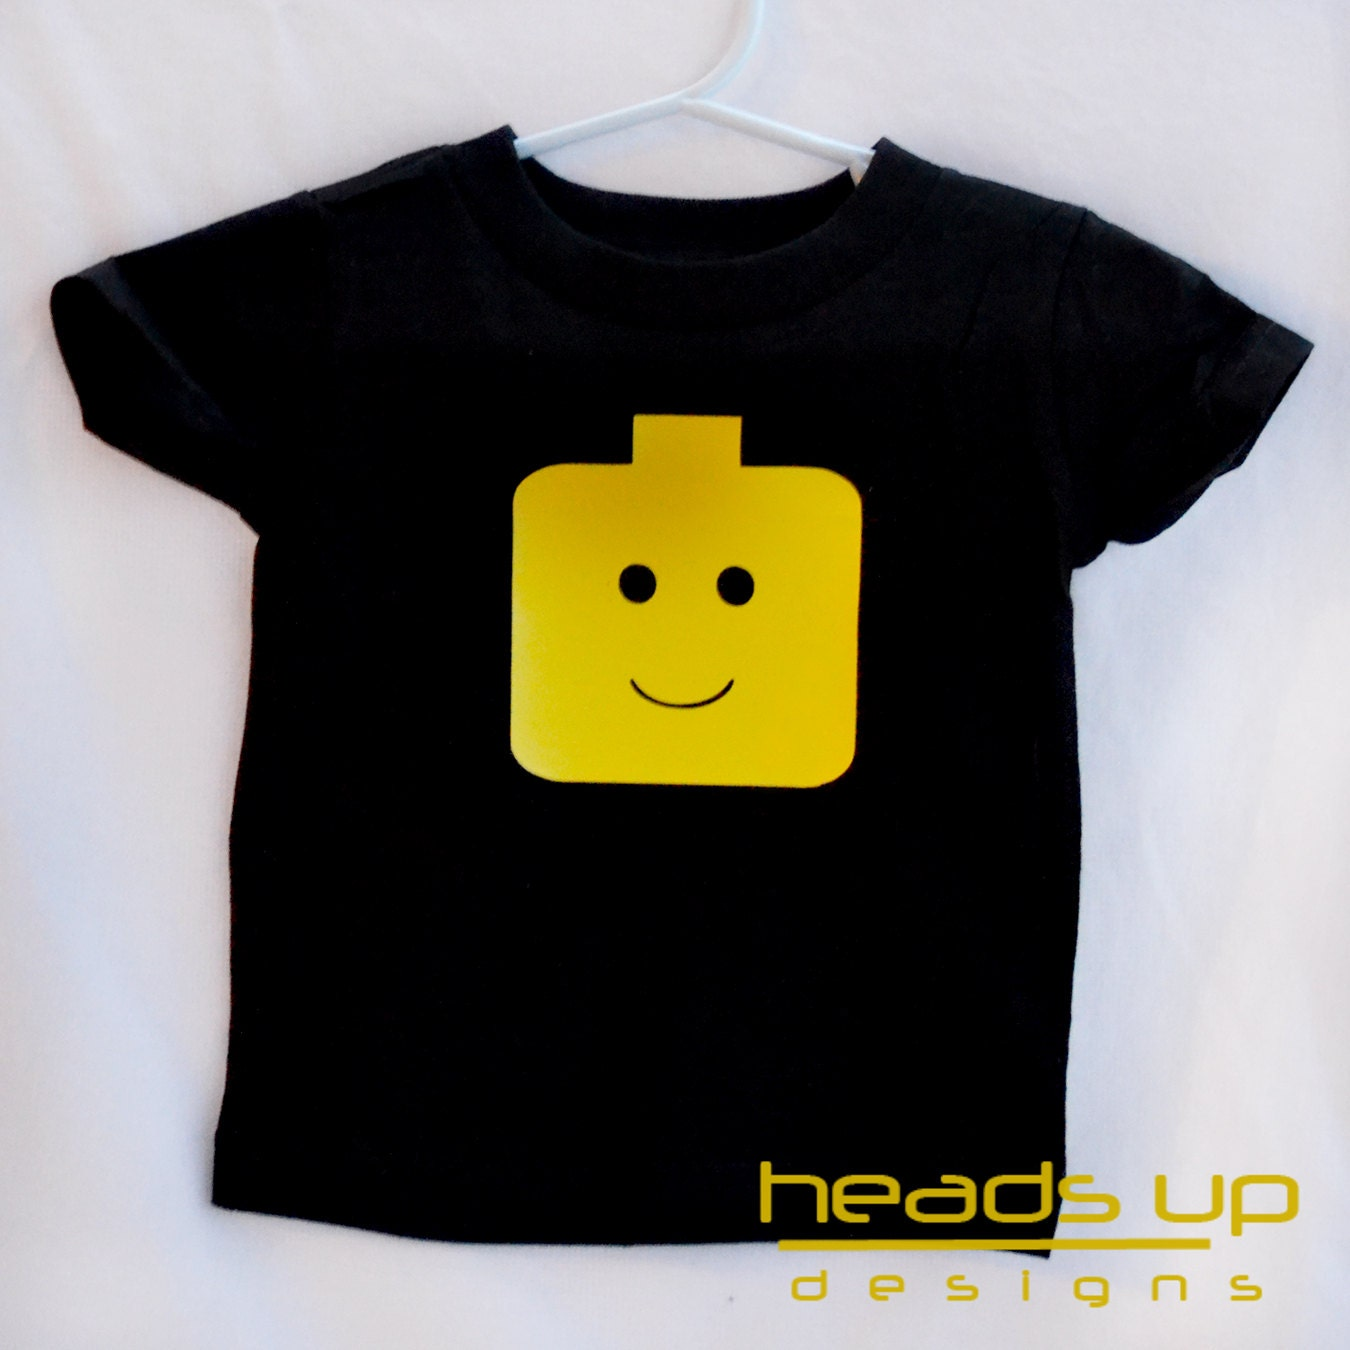 Lego t shirts for adults